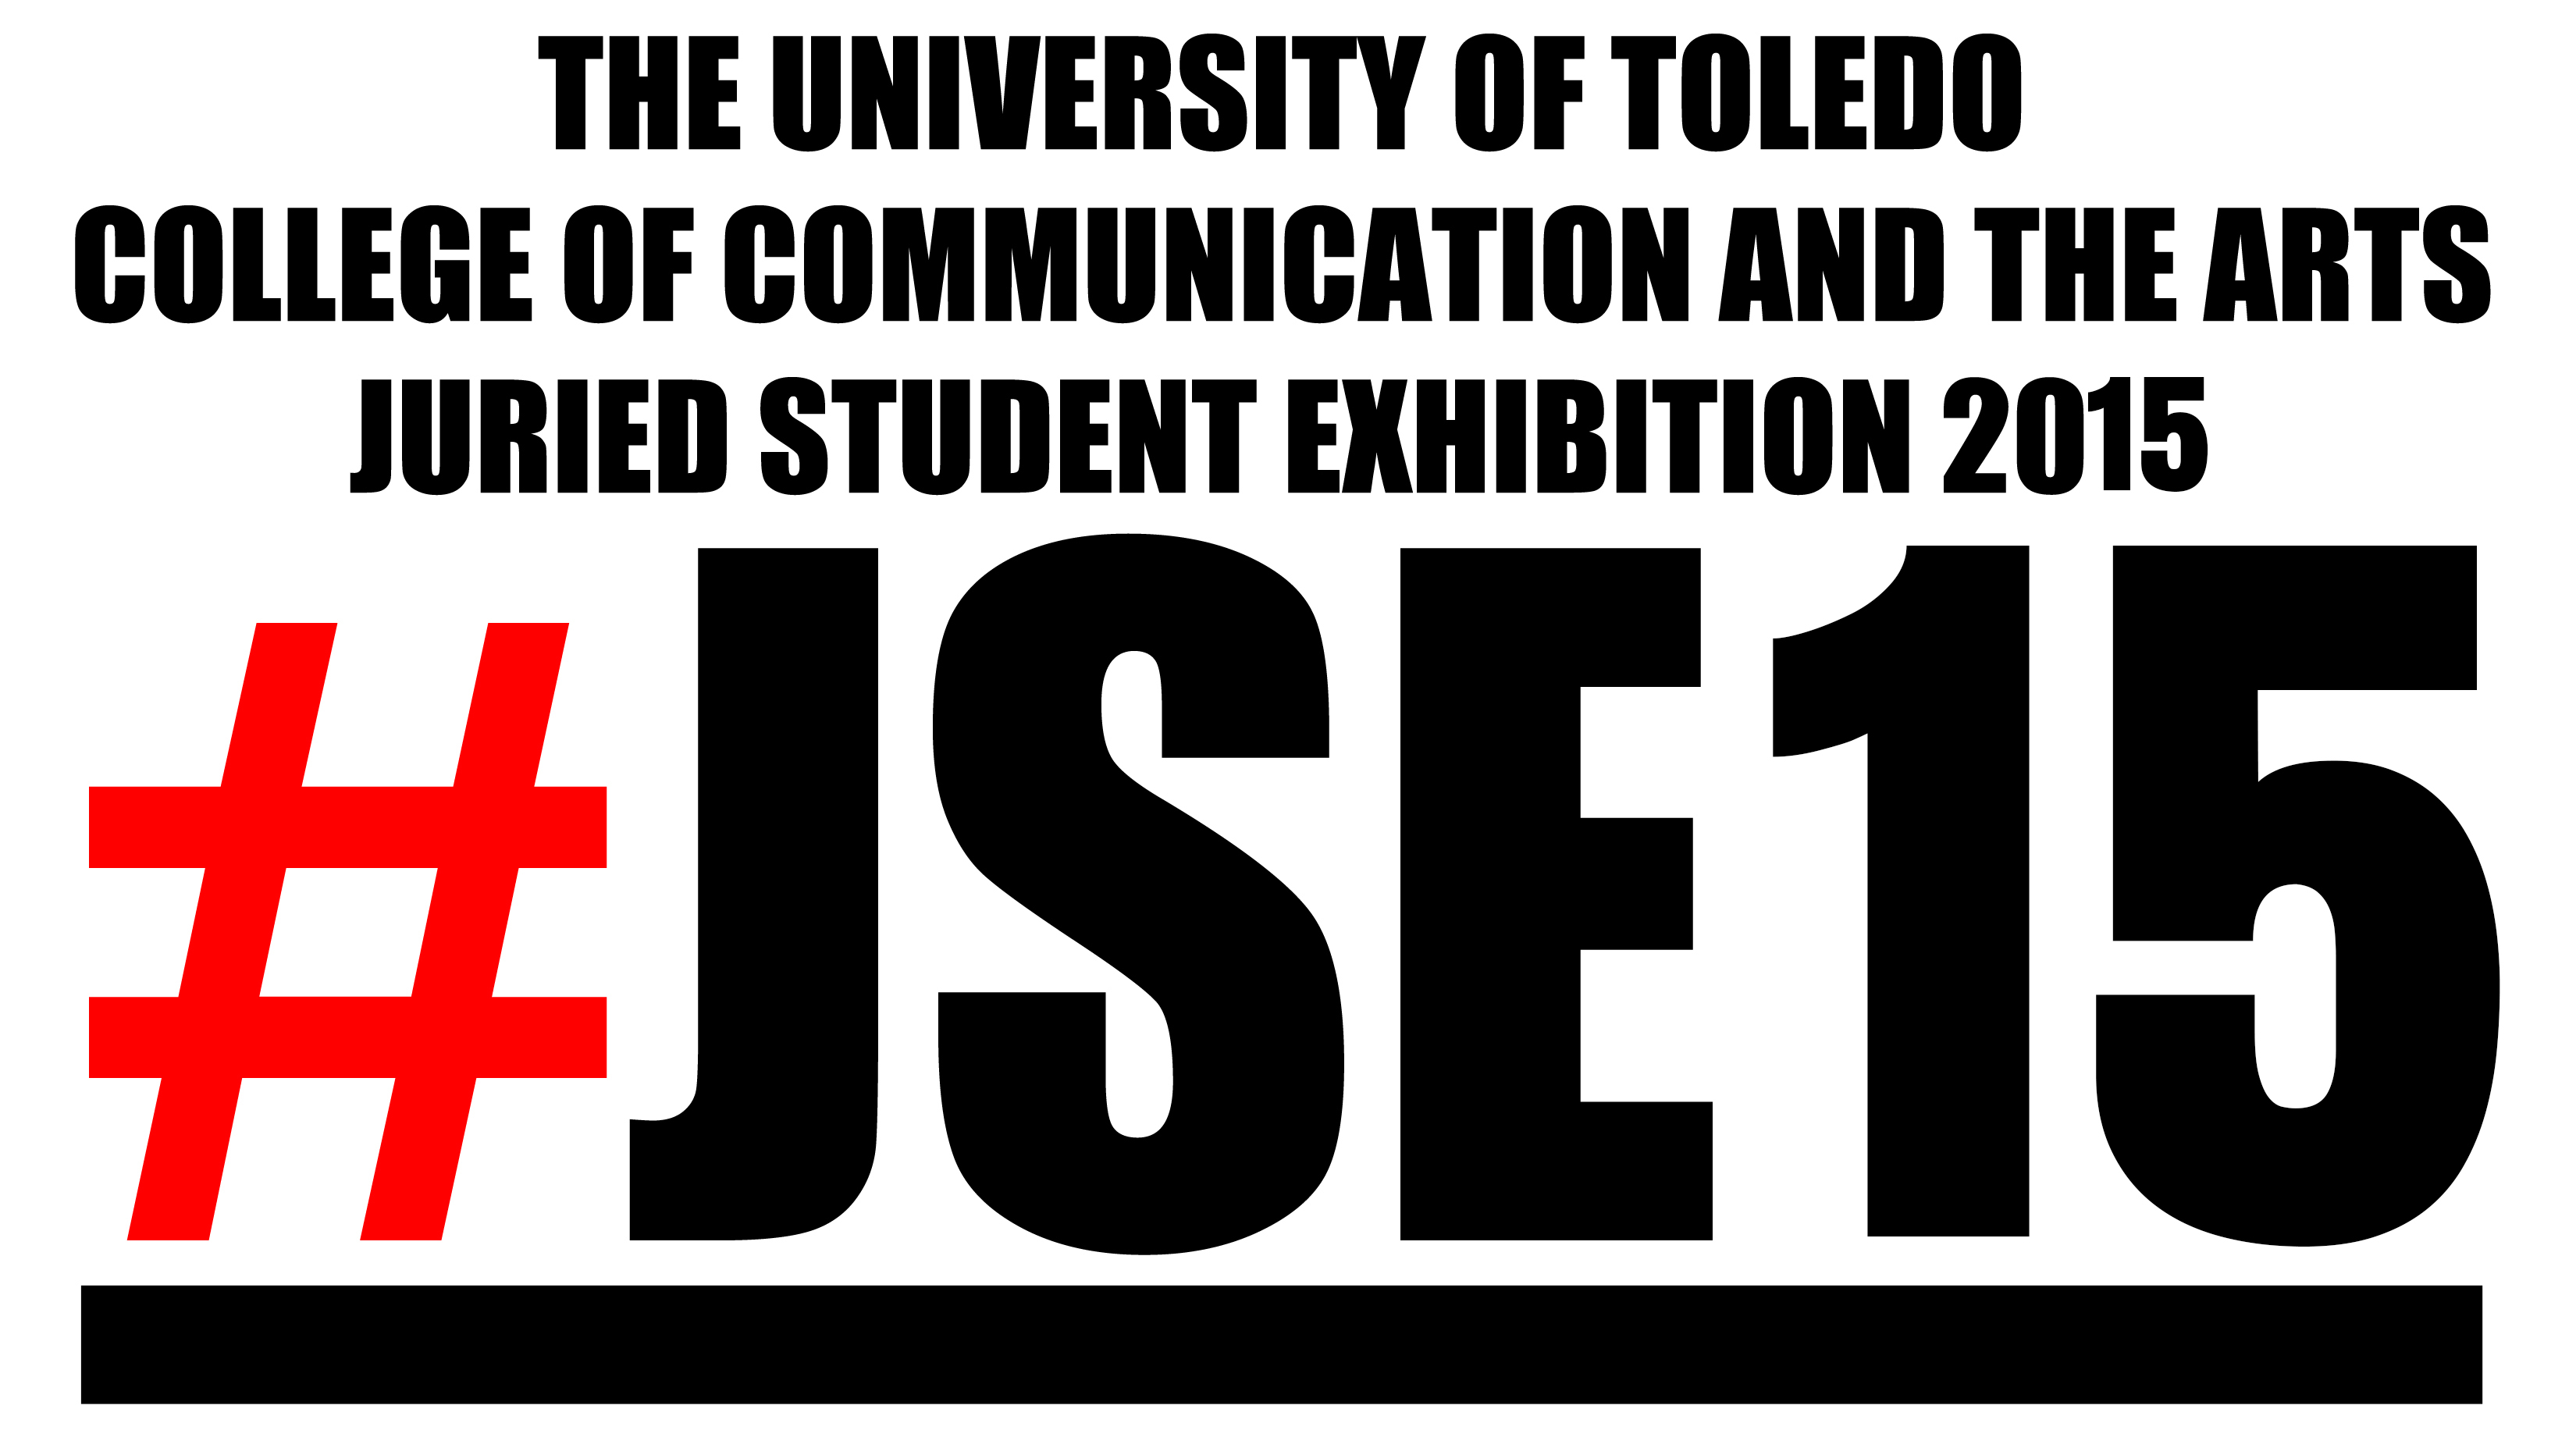 2015 Juried Student Exhibition - March 5 to April 1